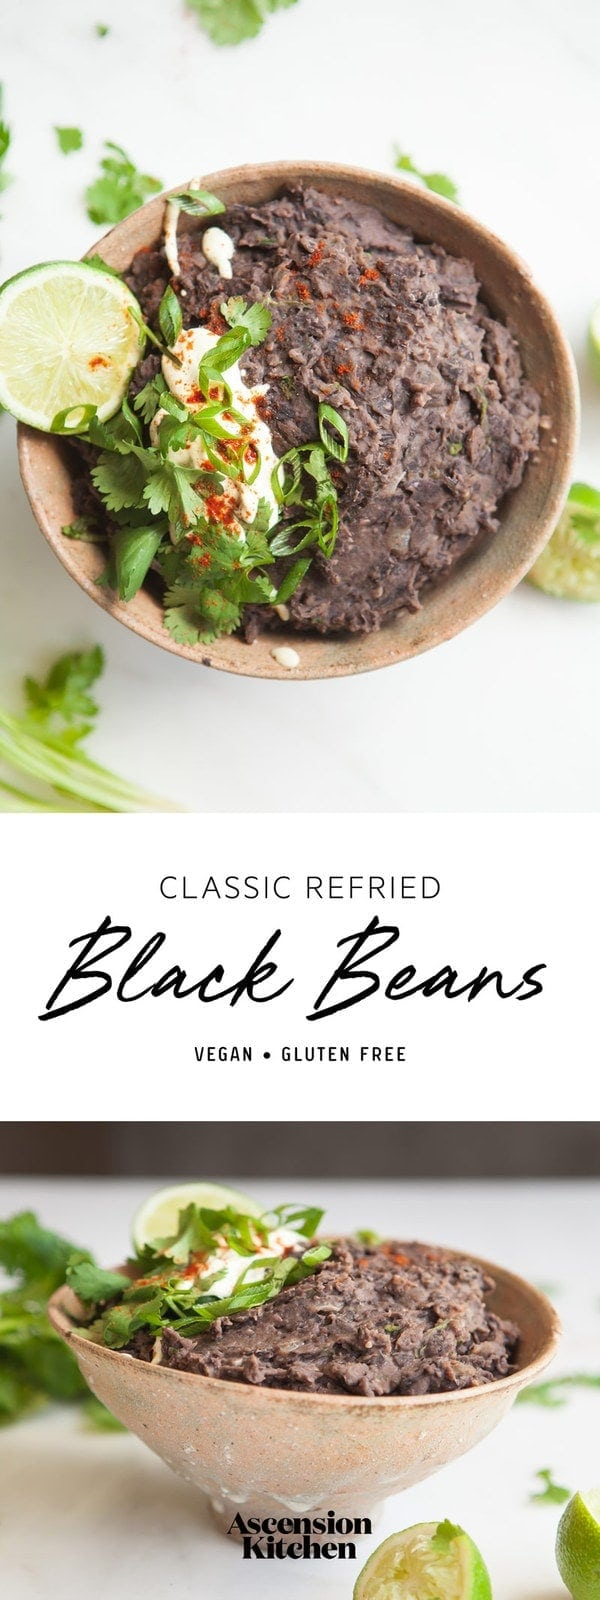 A classic homemade Refried Black Beans recipe – enjoy with tacos, burritos, nachos or simply with rice and vegetables. #blackbeansnutrition #blackbeansbenefits #refriedblackbeans #refriedblackbeansvegan #refriedblackbeanshomemade #refriedblackbeansrecipe #refriedblackbeansfromscratch #vegantacos #vegantacosrecipe #AscensionKitchen // Pin to your own inspiration board! //